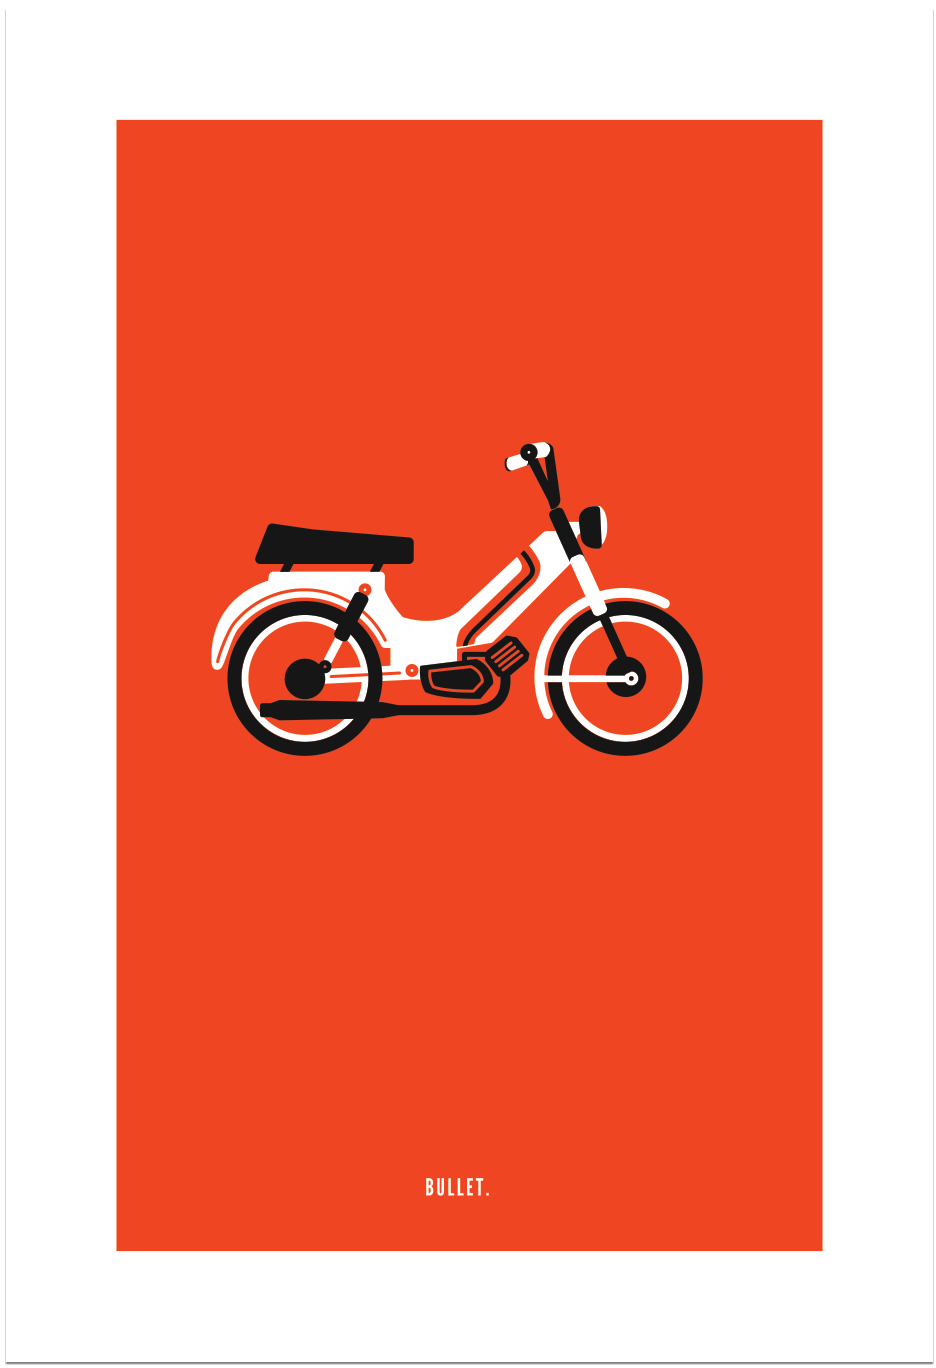 moped-print-3.png